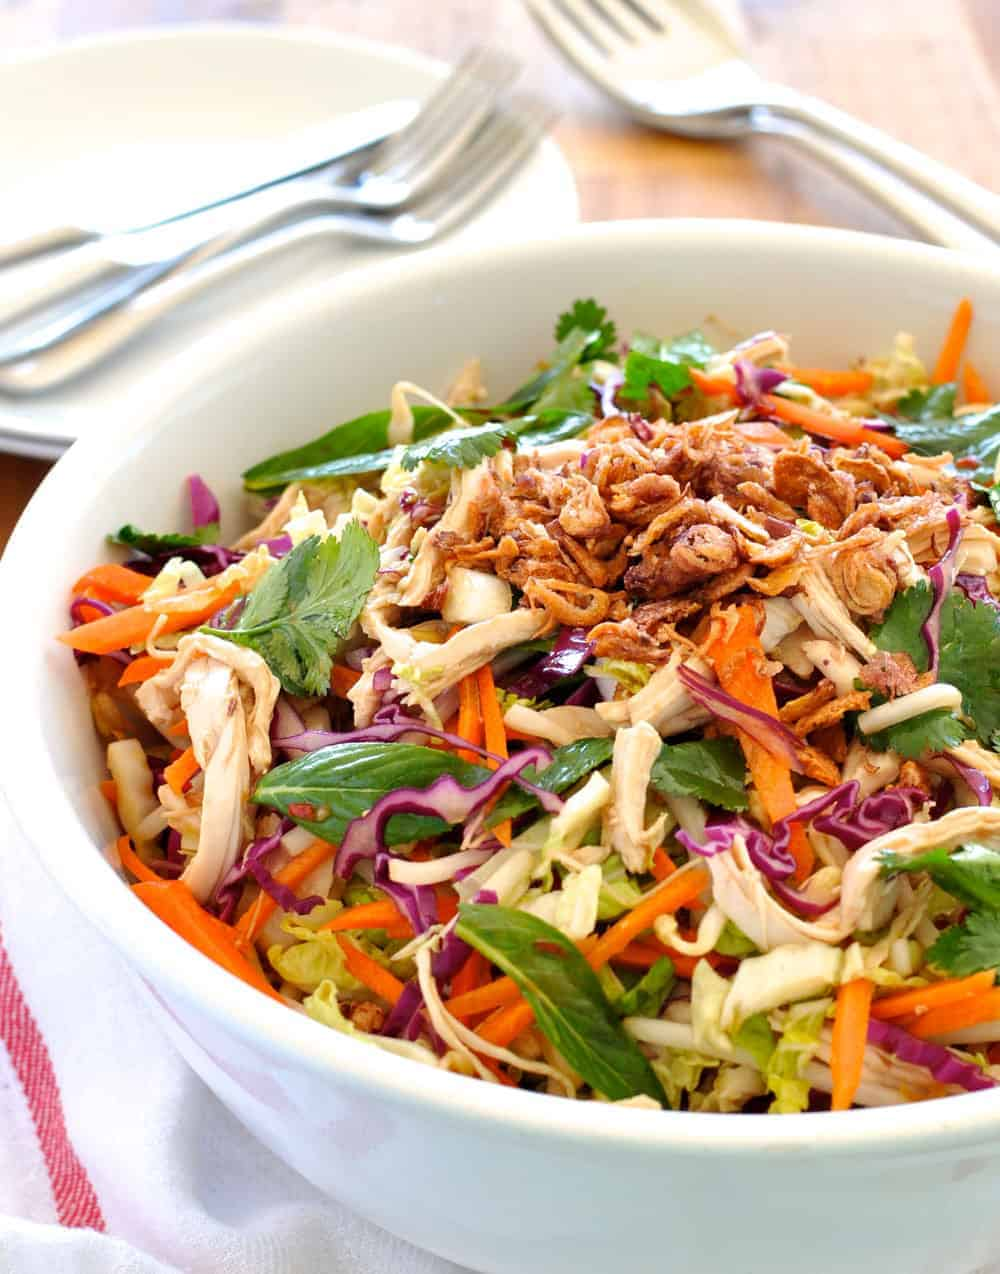 Crunchy Asian Chicken Salad | RecipeTin Eats